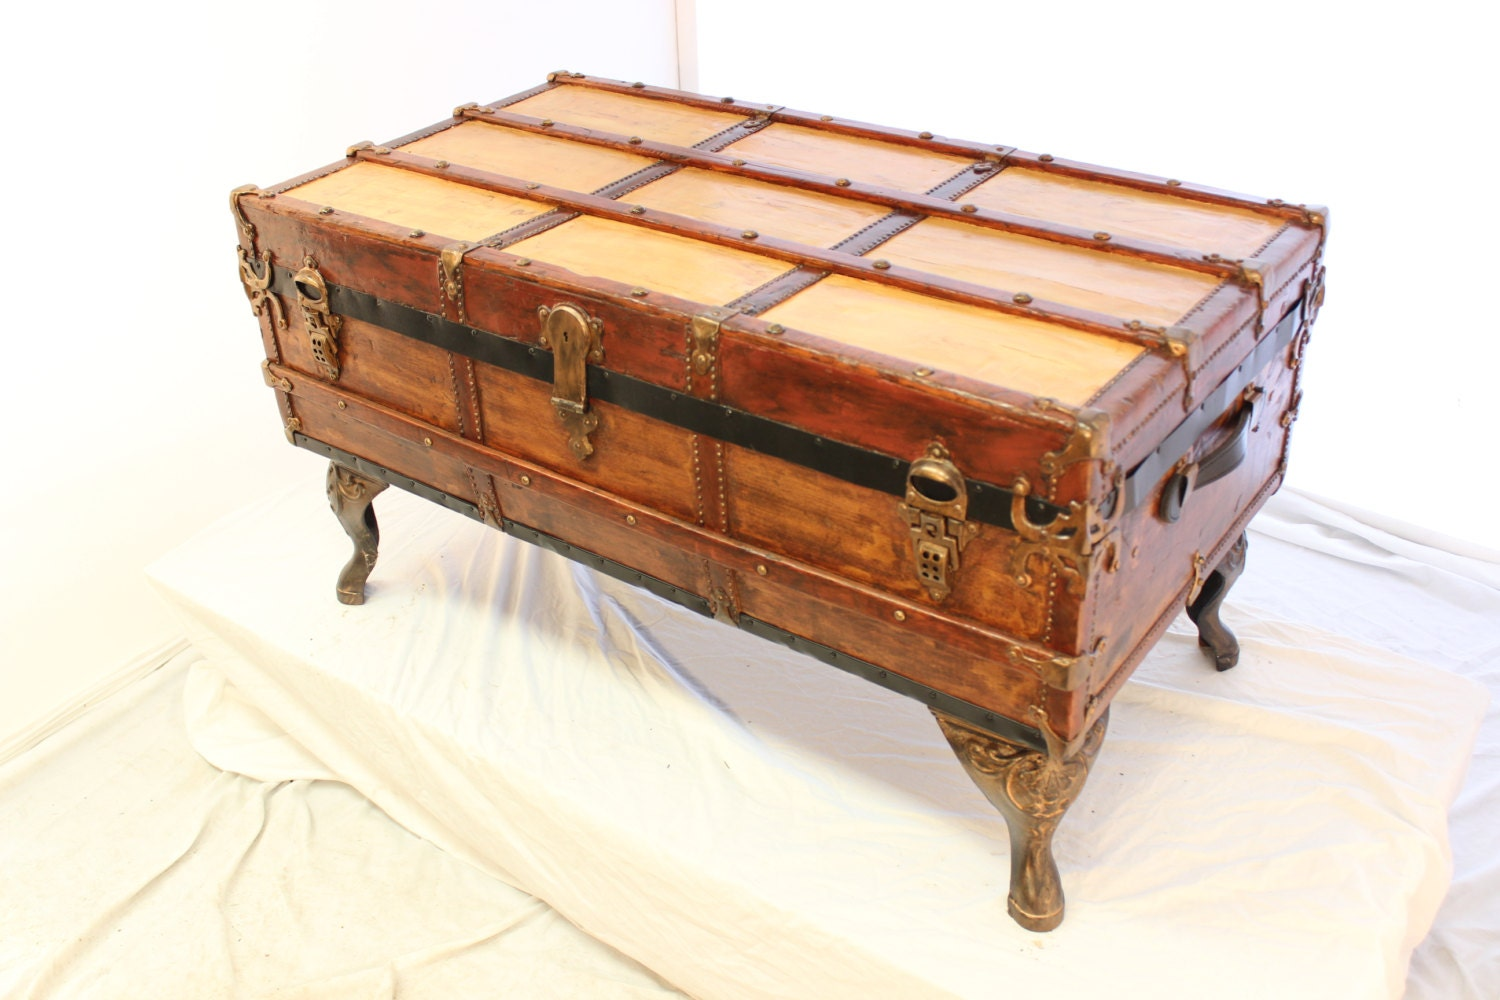 Antique Trunk Coffee Table By Telliottworks On Etsy